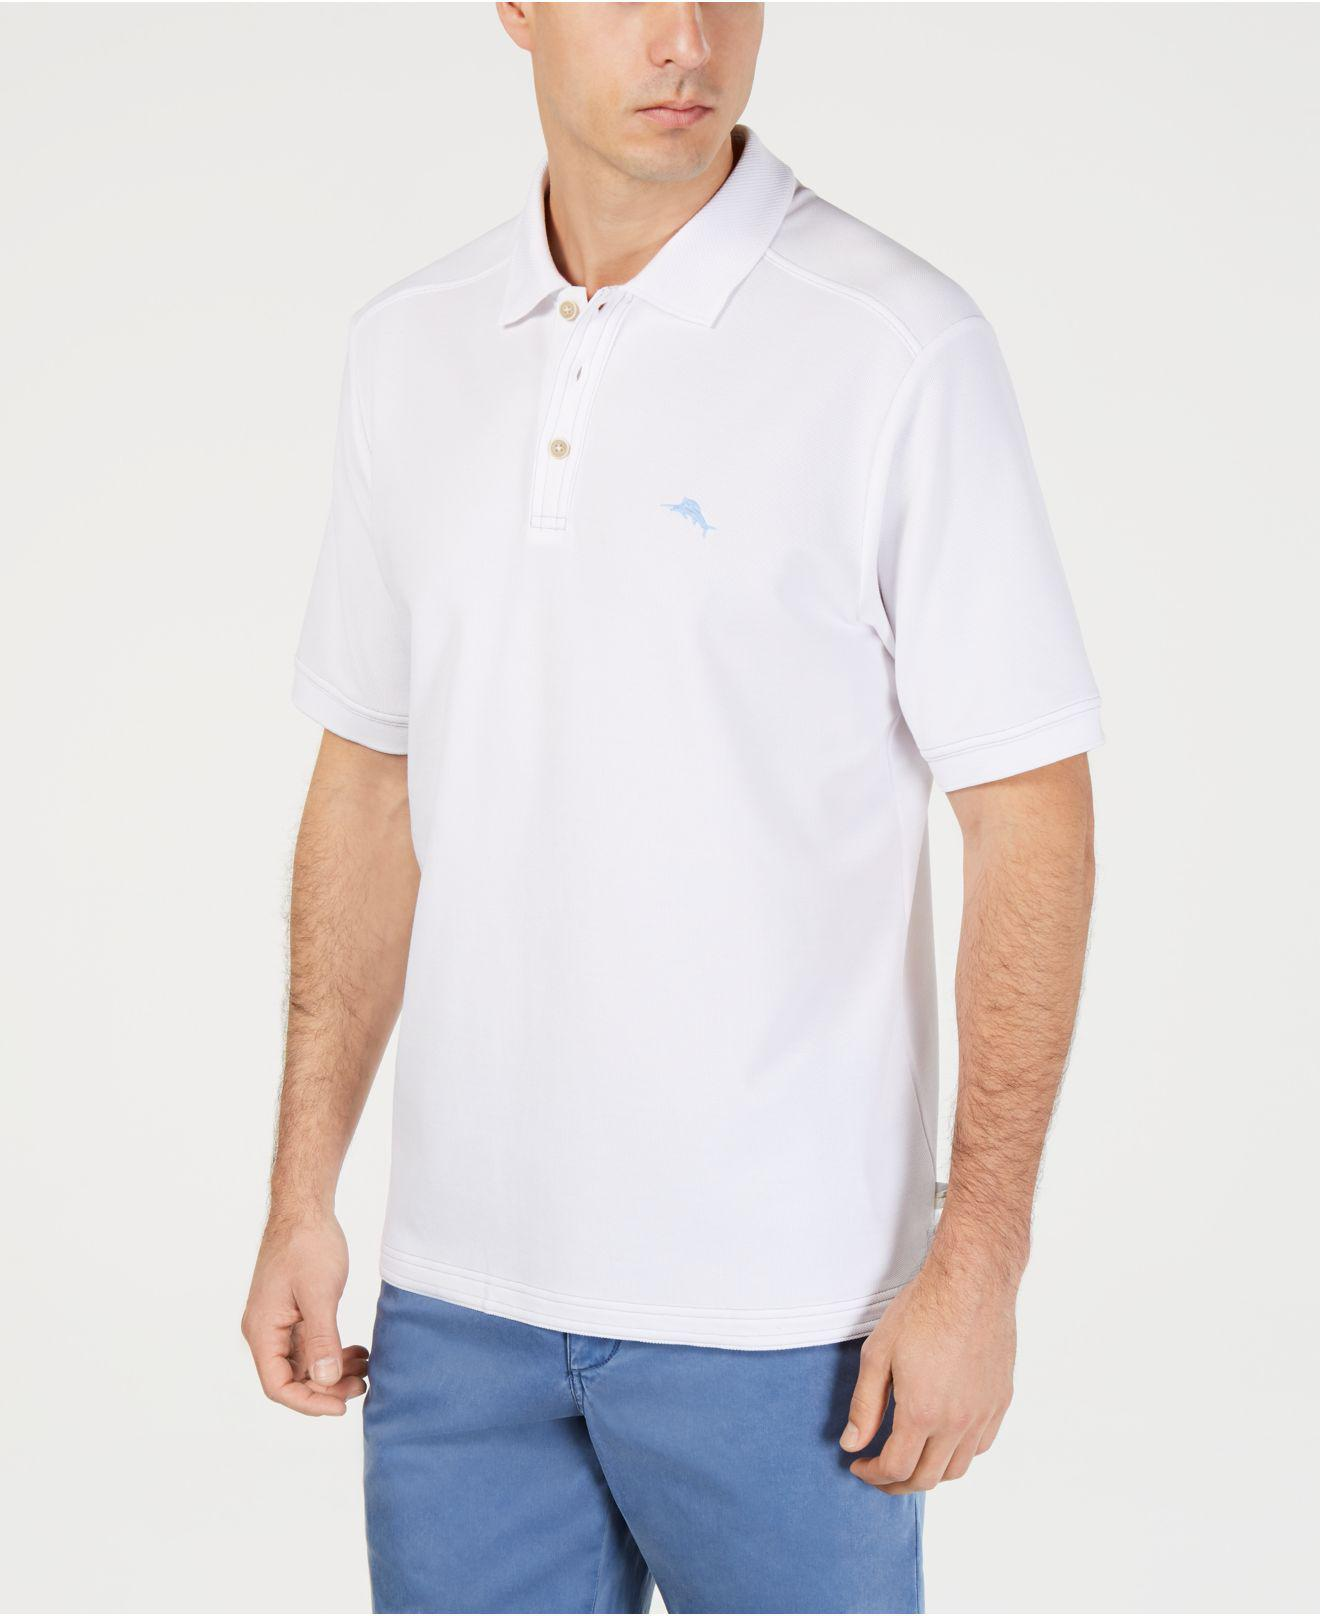 ae7c1be4cedcdd Lyst - Tommy Bahama Men s Emfielder 2.0 Polo in White for Men - Save 19%